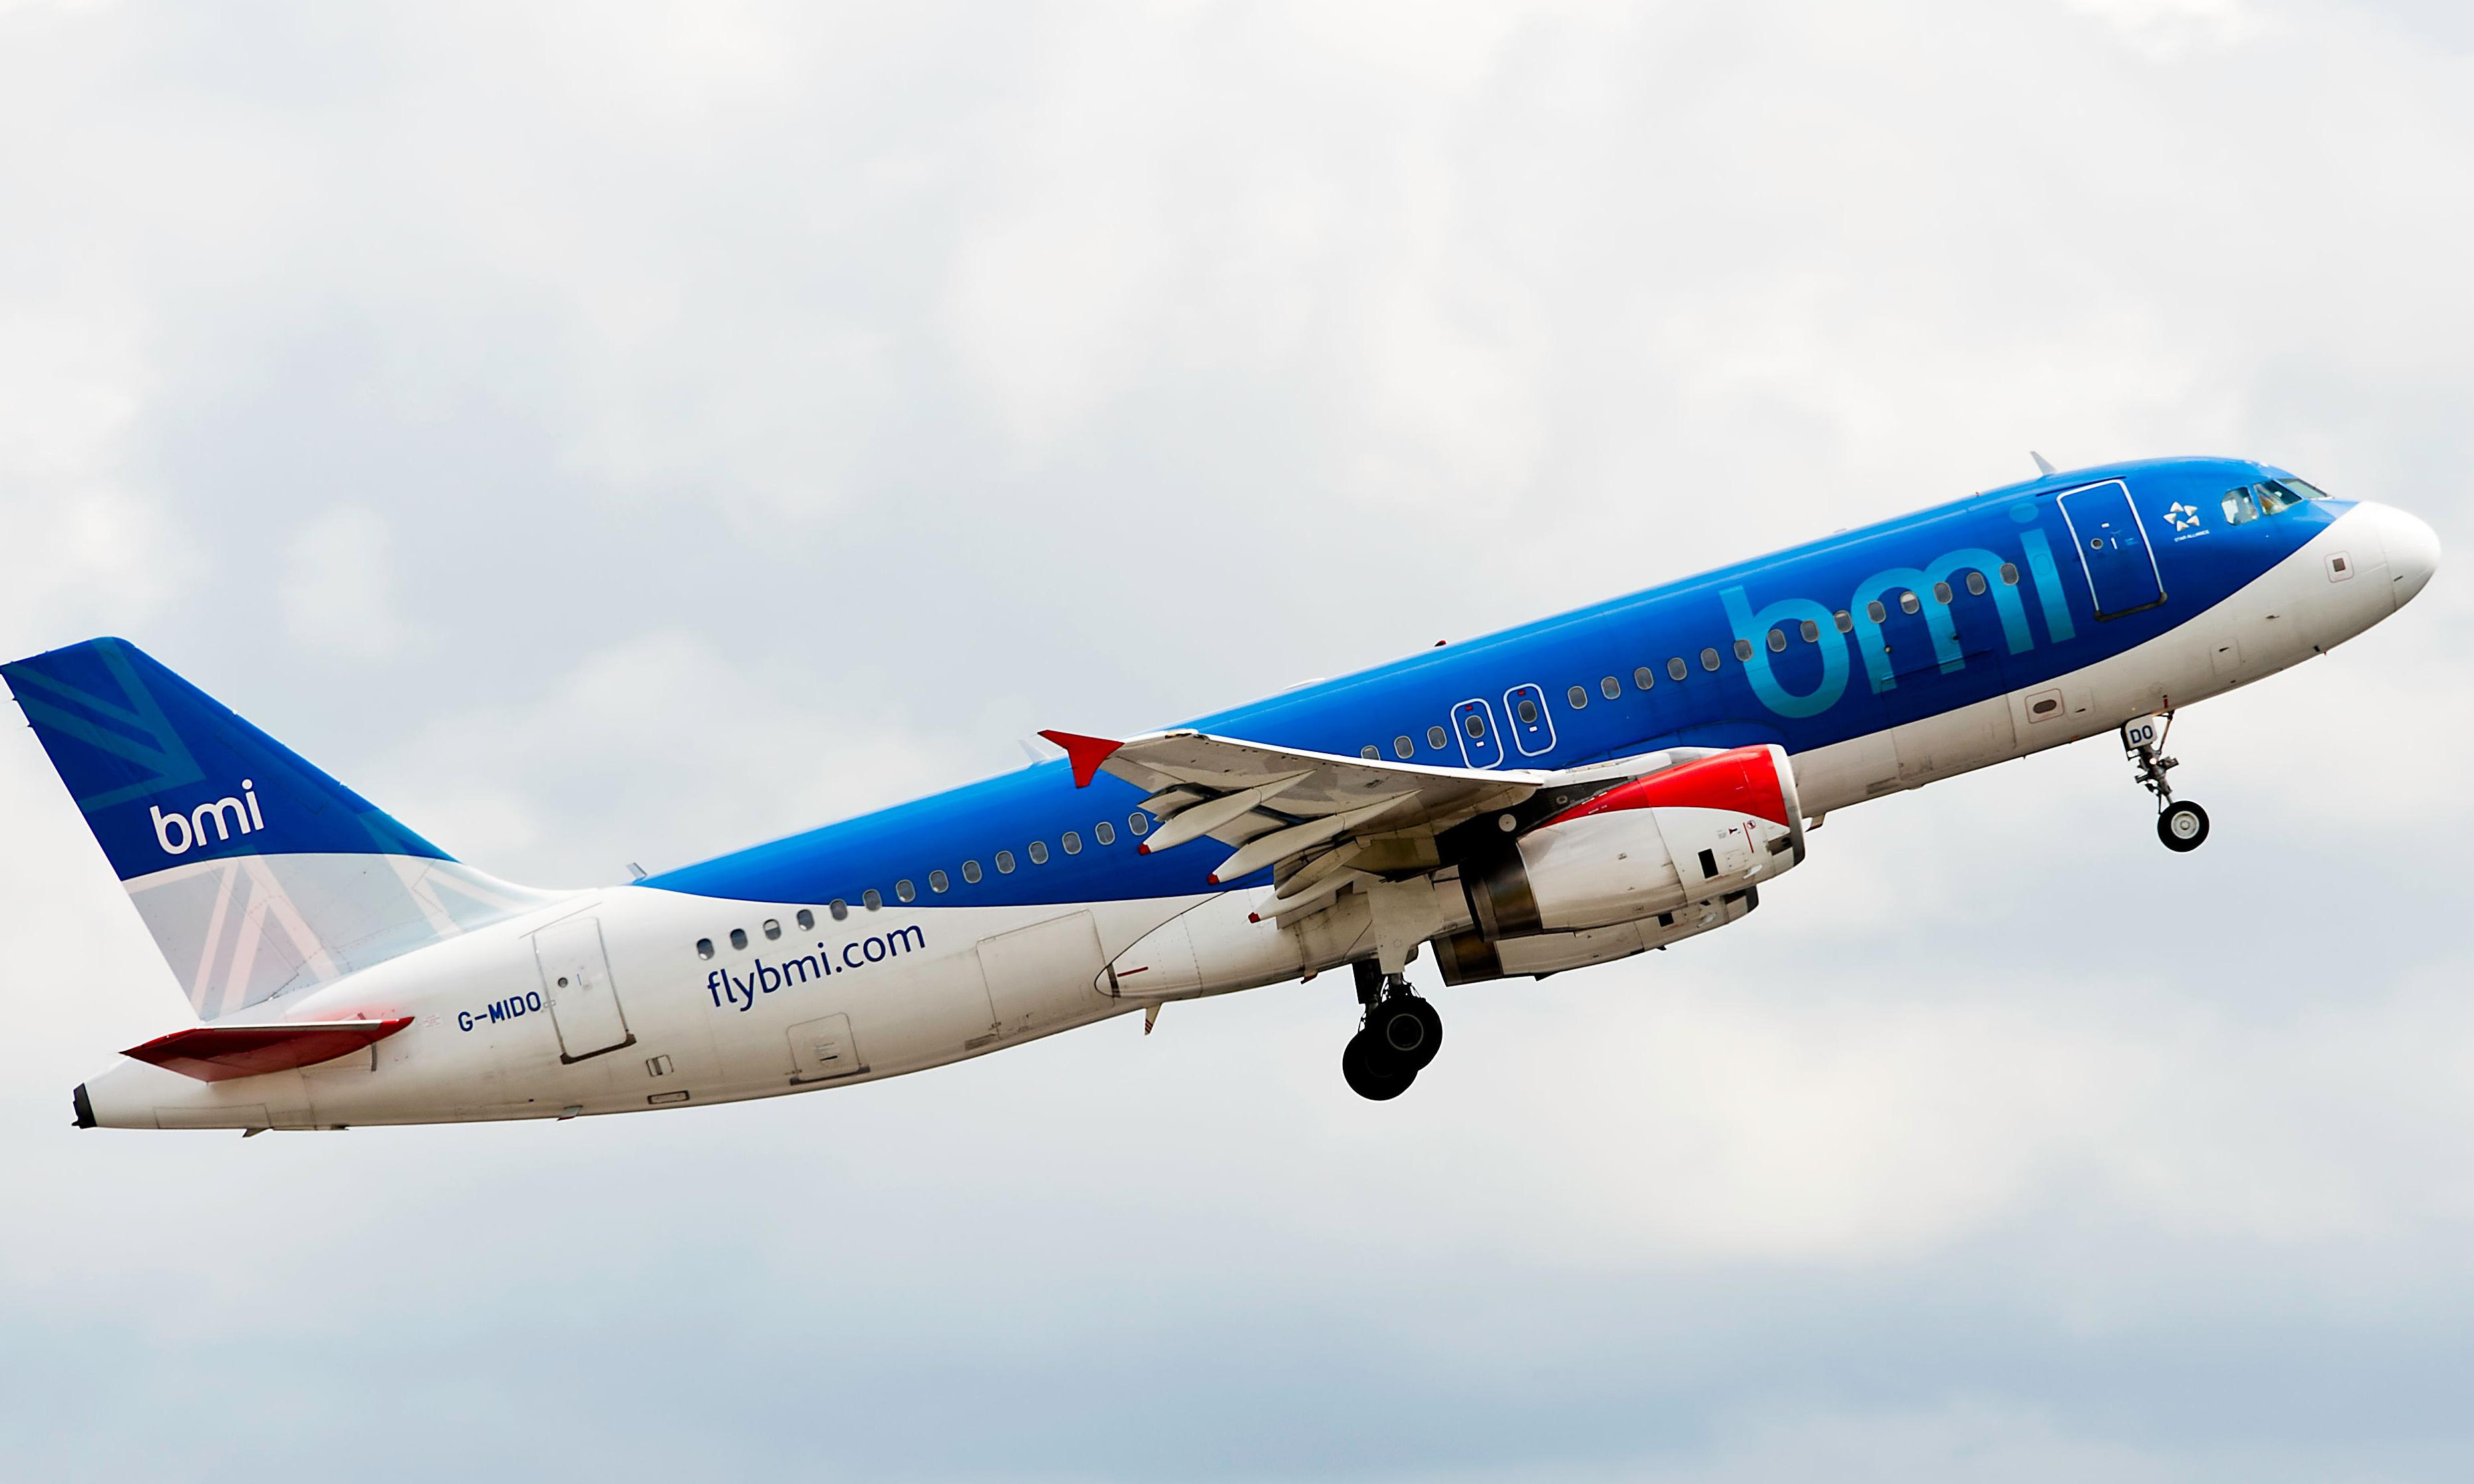 Flybmi appoints BDO as administrators after ceasing operations